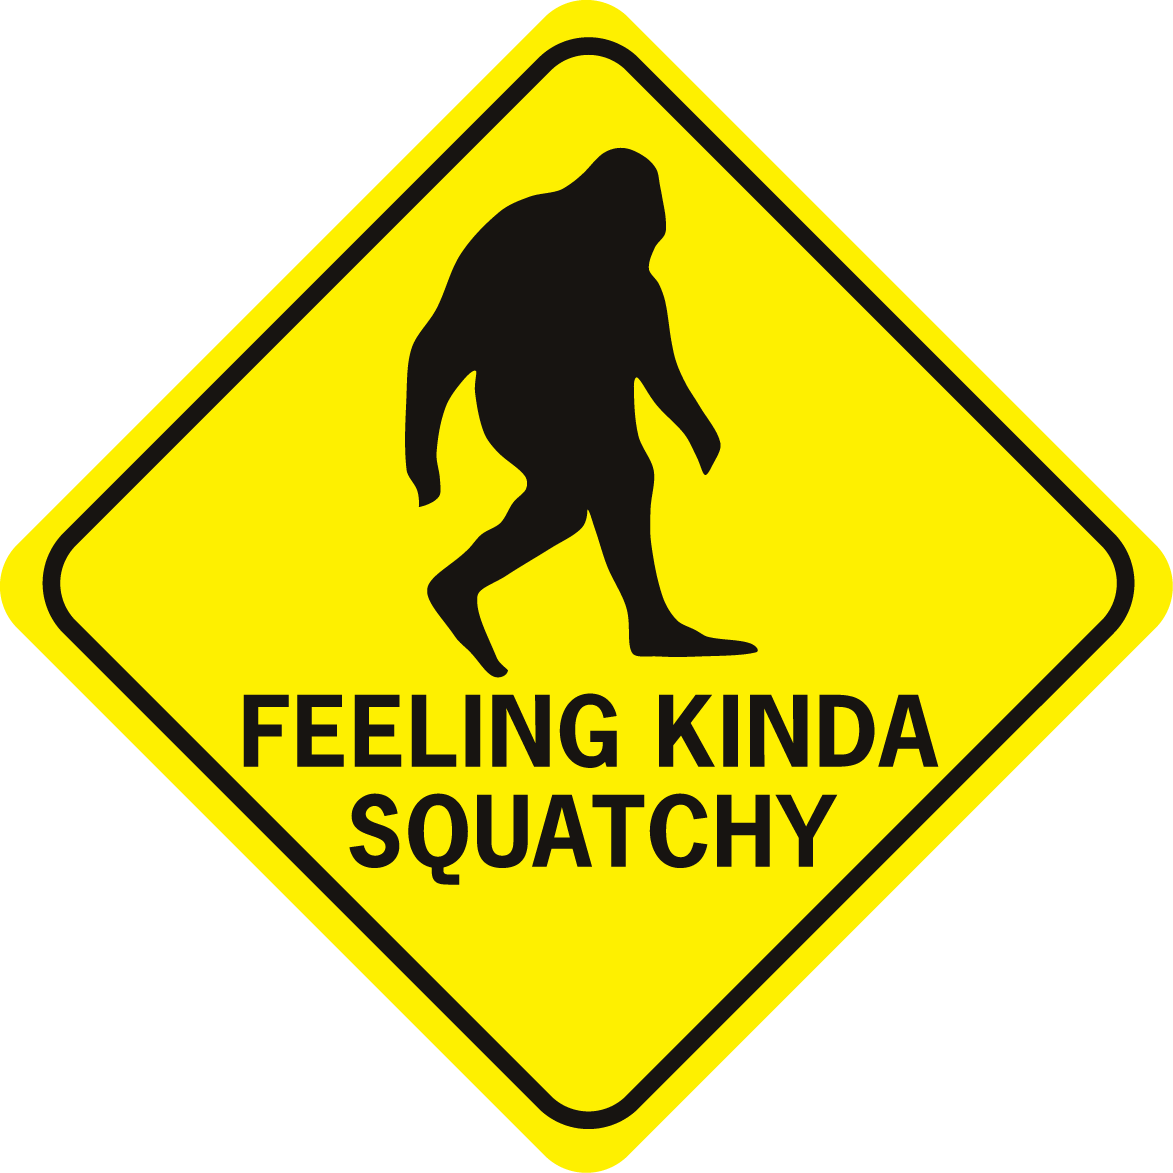 Bigfoot Feeling Kinda Squatchy Diamond